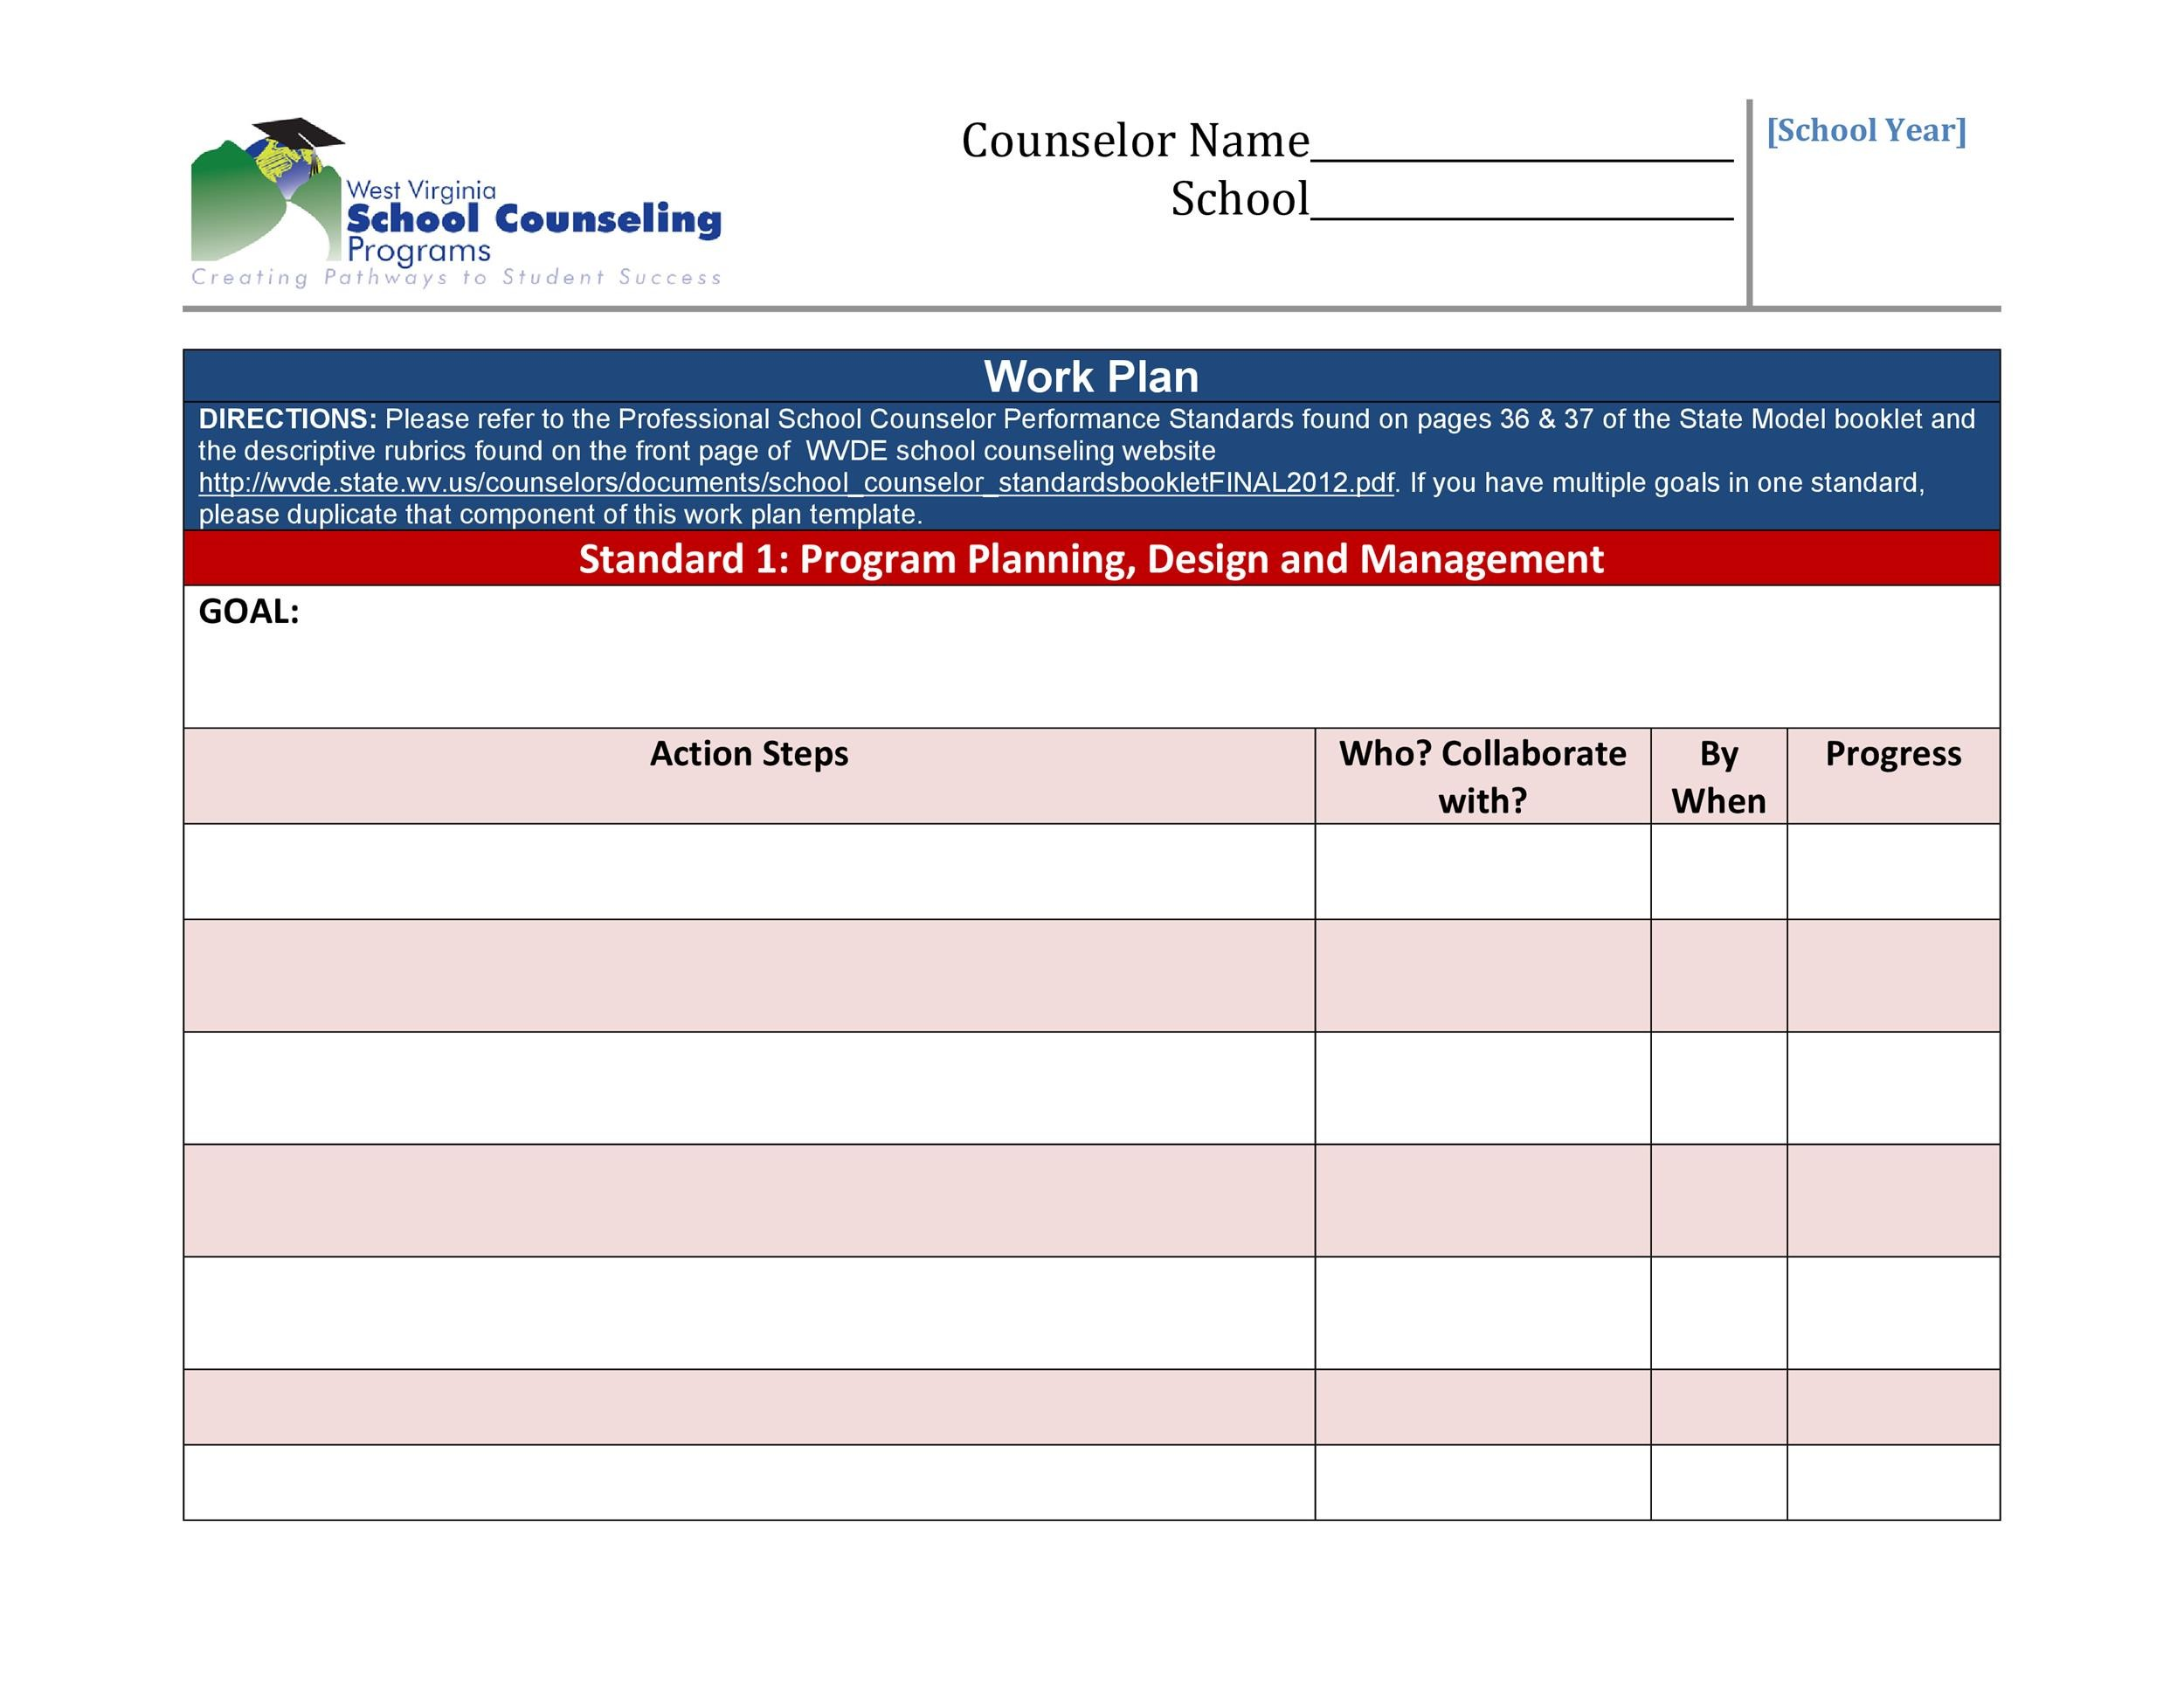 Work Plan - 40 Great Templates  Samples (Excel / Word) ᐅ Template Lab